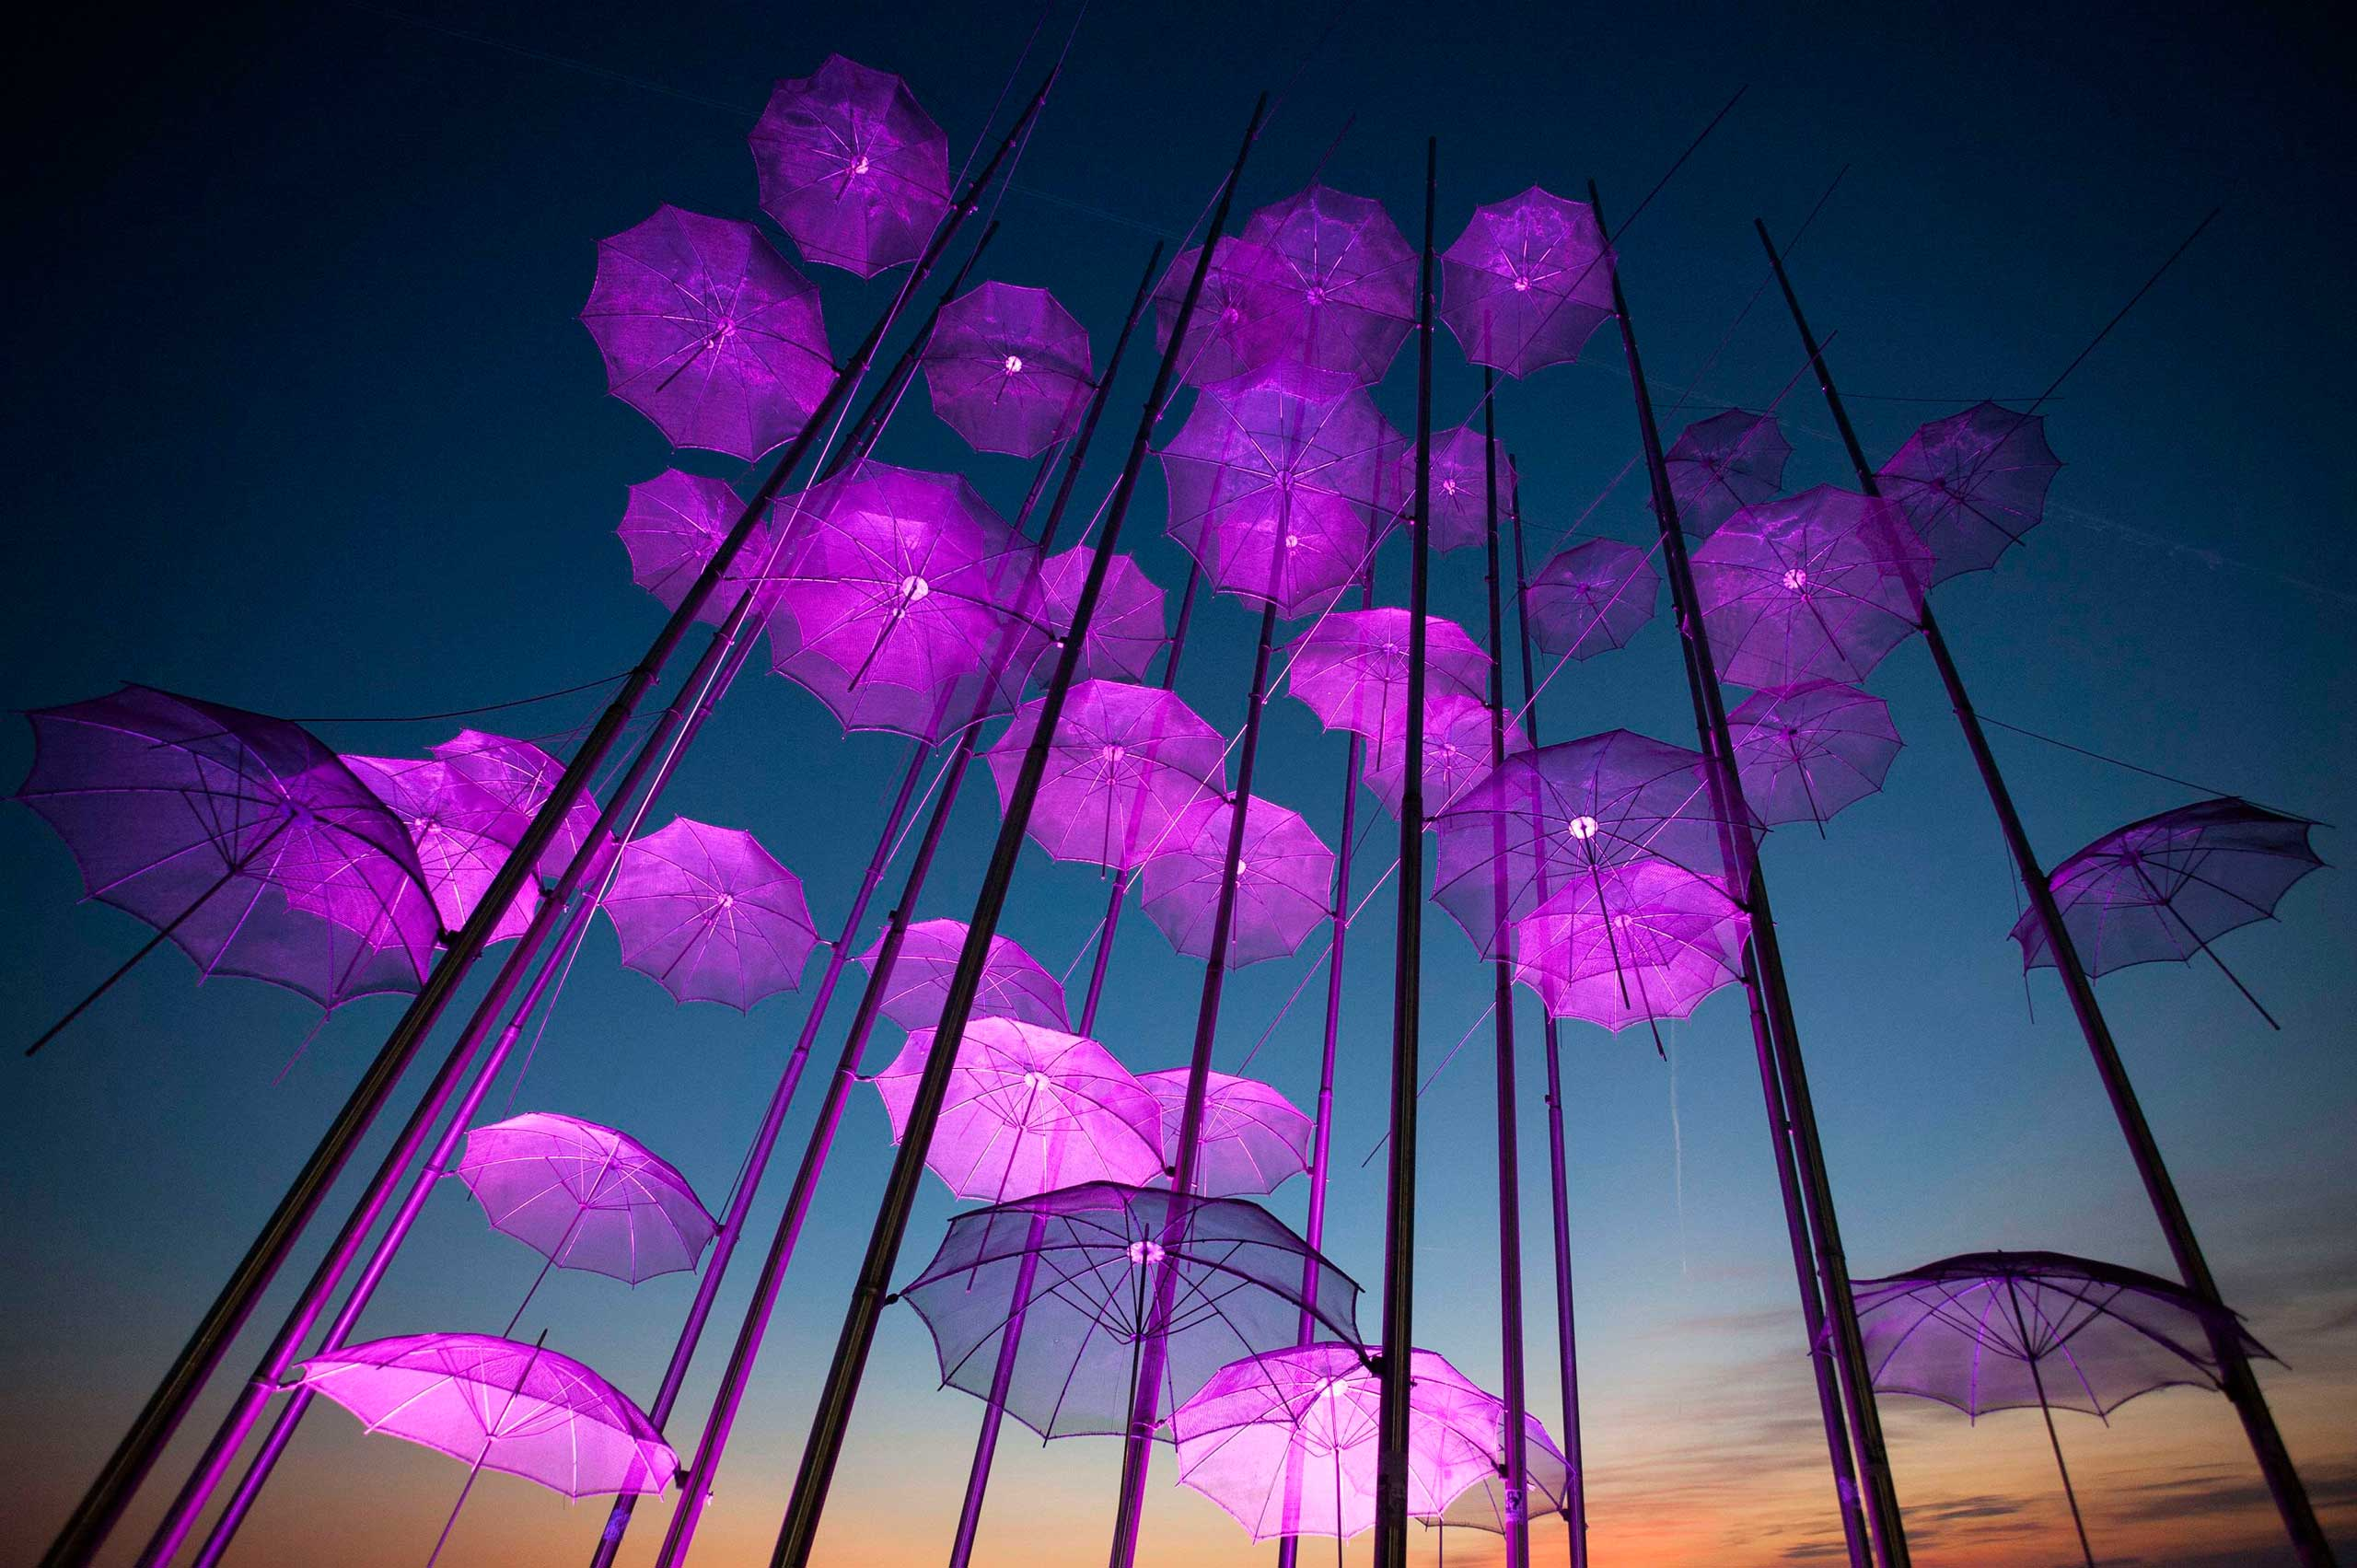 Oct. 21, 2014.   Umbrellas , the sculpture by Giorgos Zogolopoulos is illuminated in pink light to mark Breast Cancer Awareness Month in Thessaloniki in northern Greece.